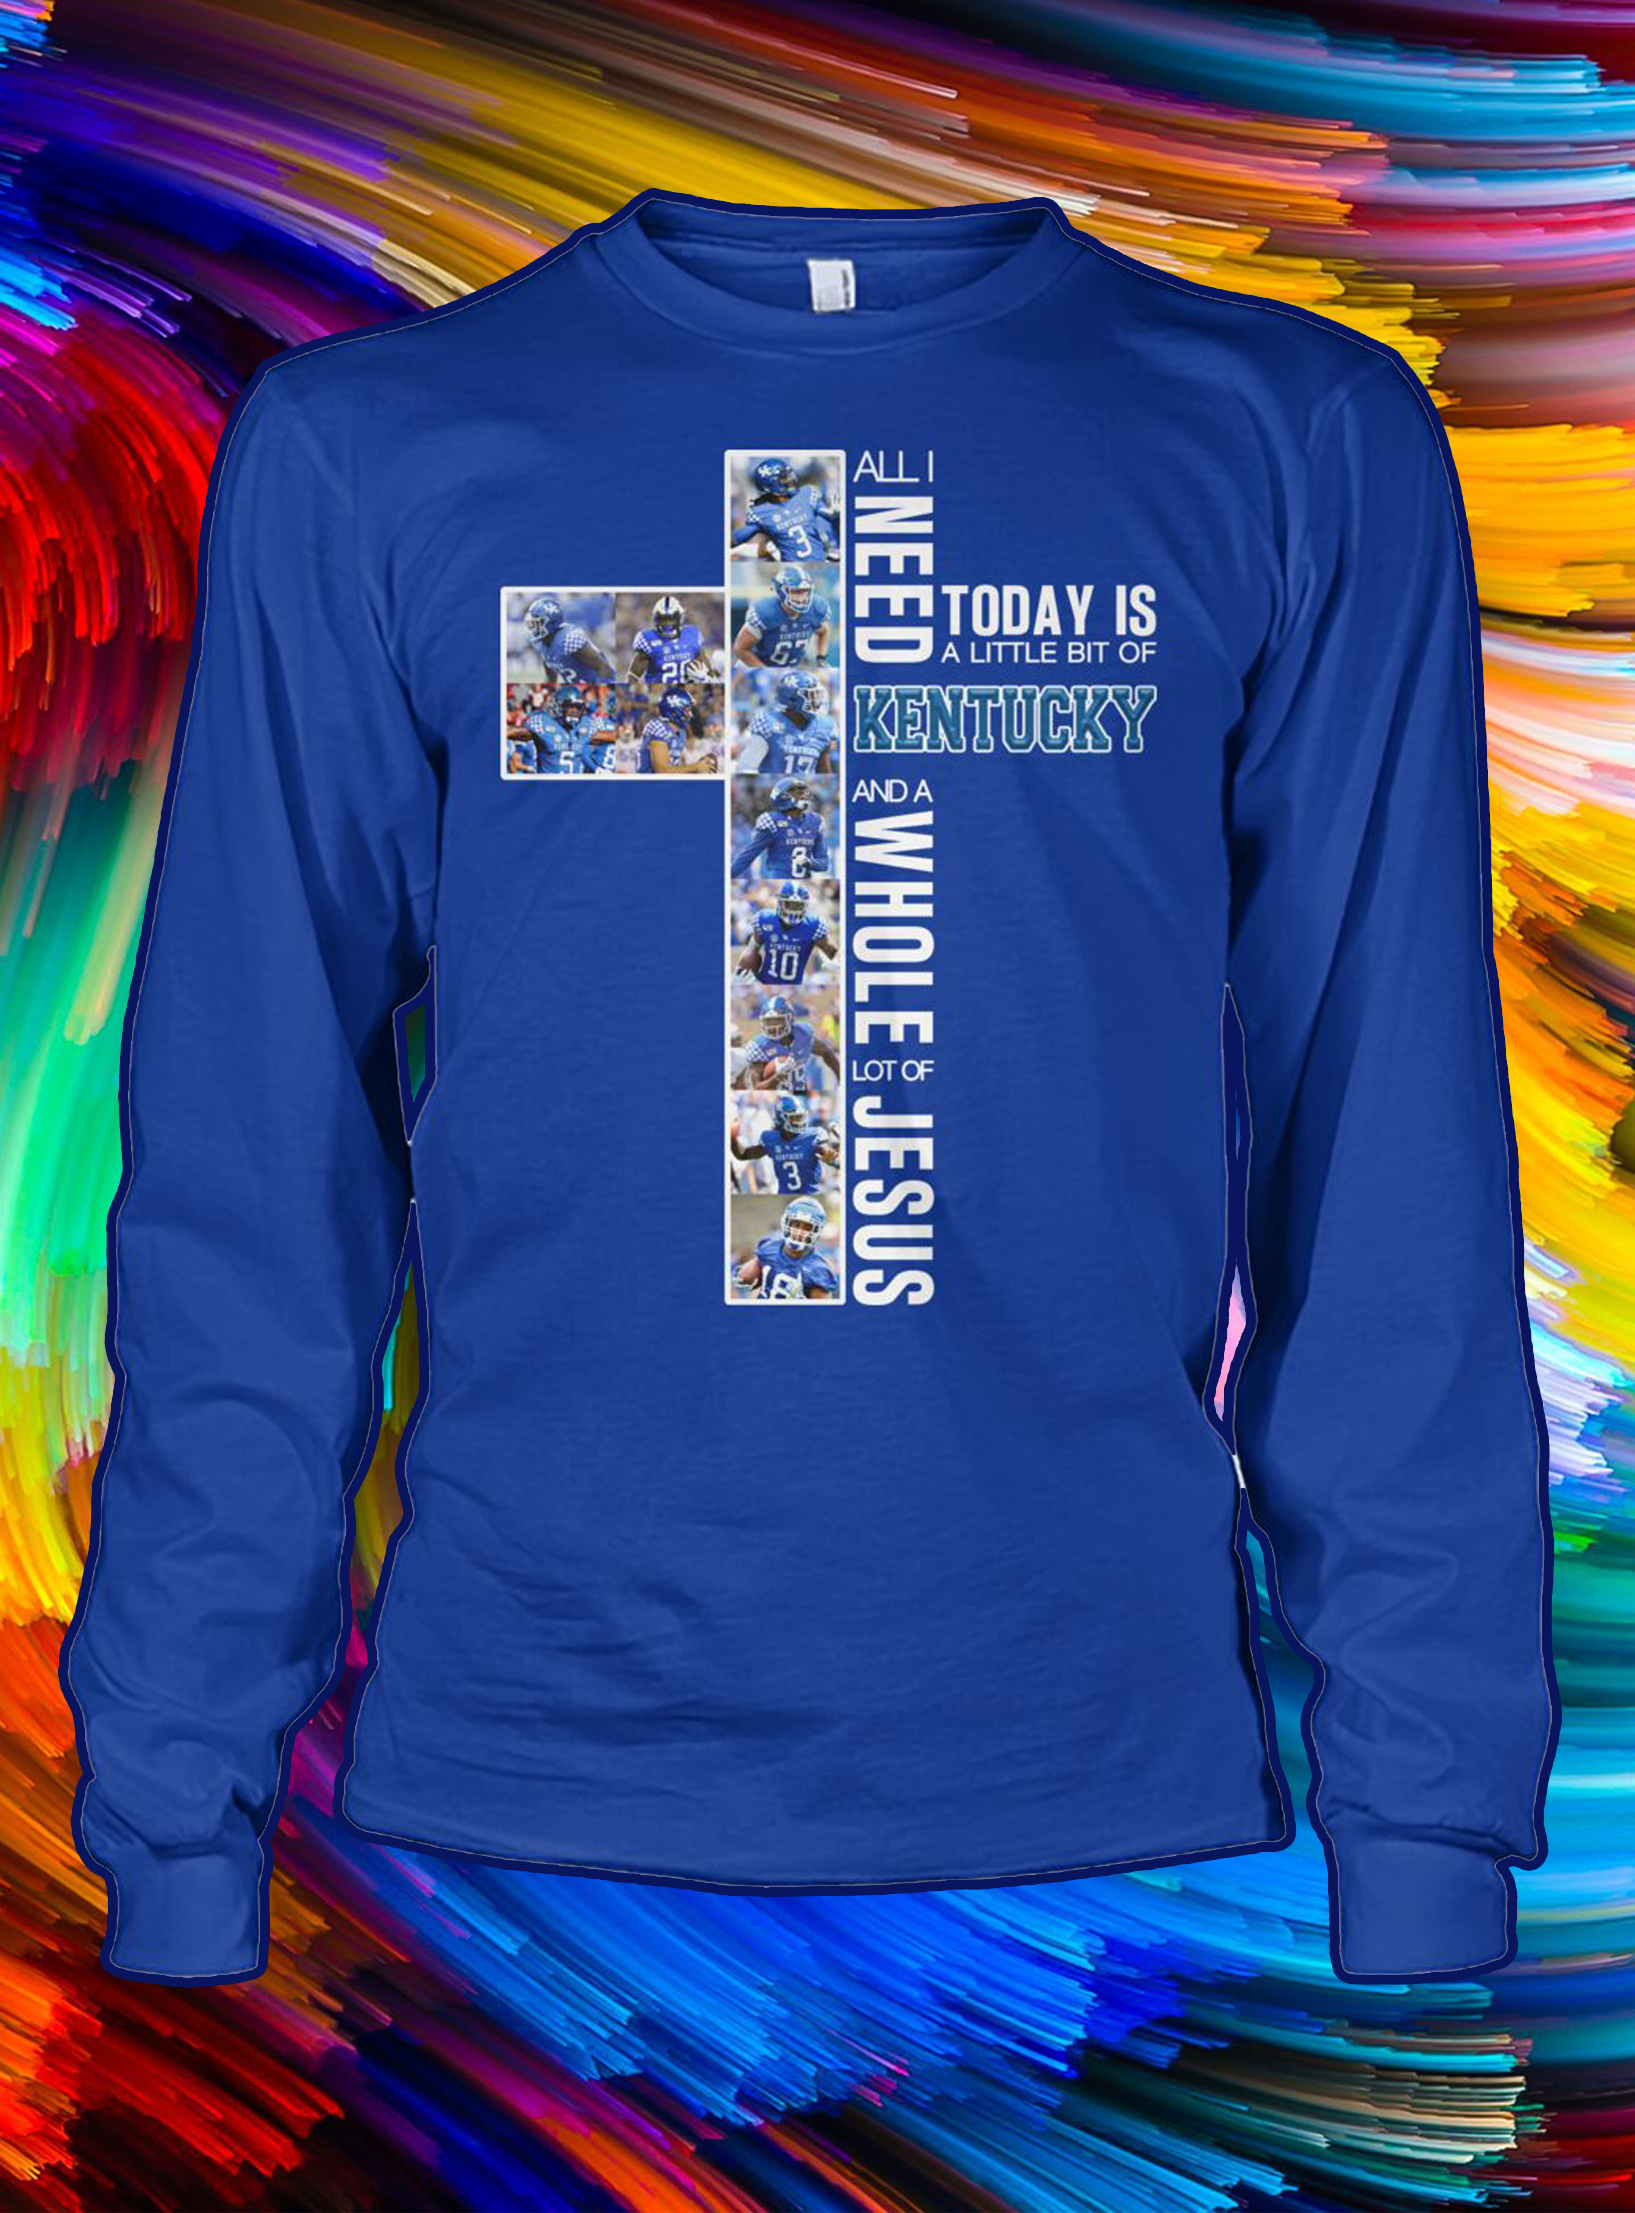 All i need today is a little bit of kentucky and a whole lot of jesus longsleeve tee